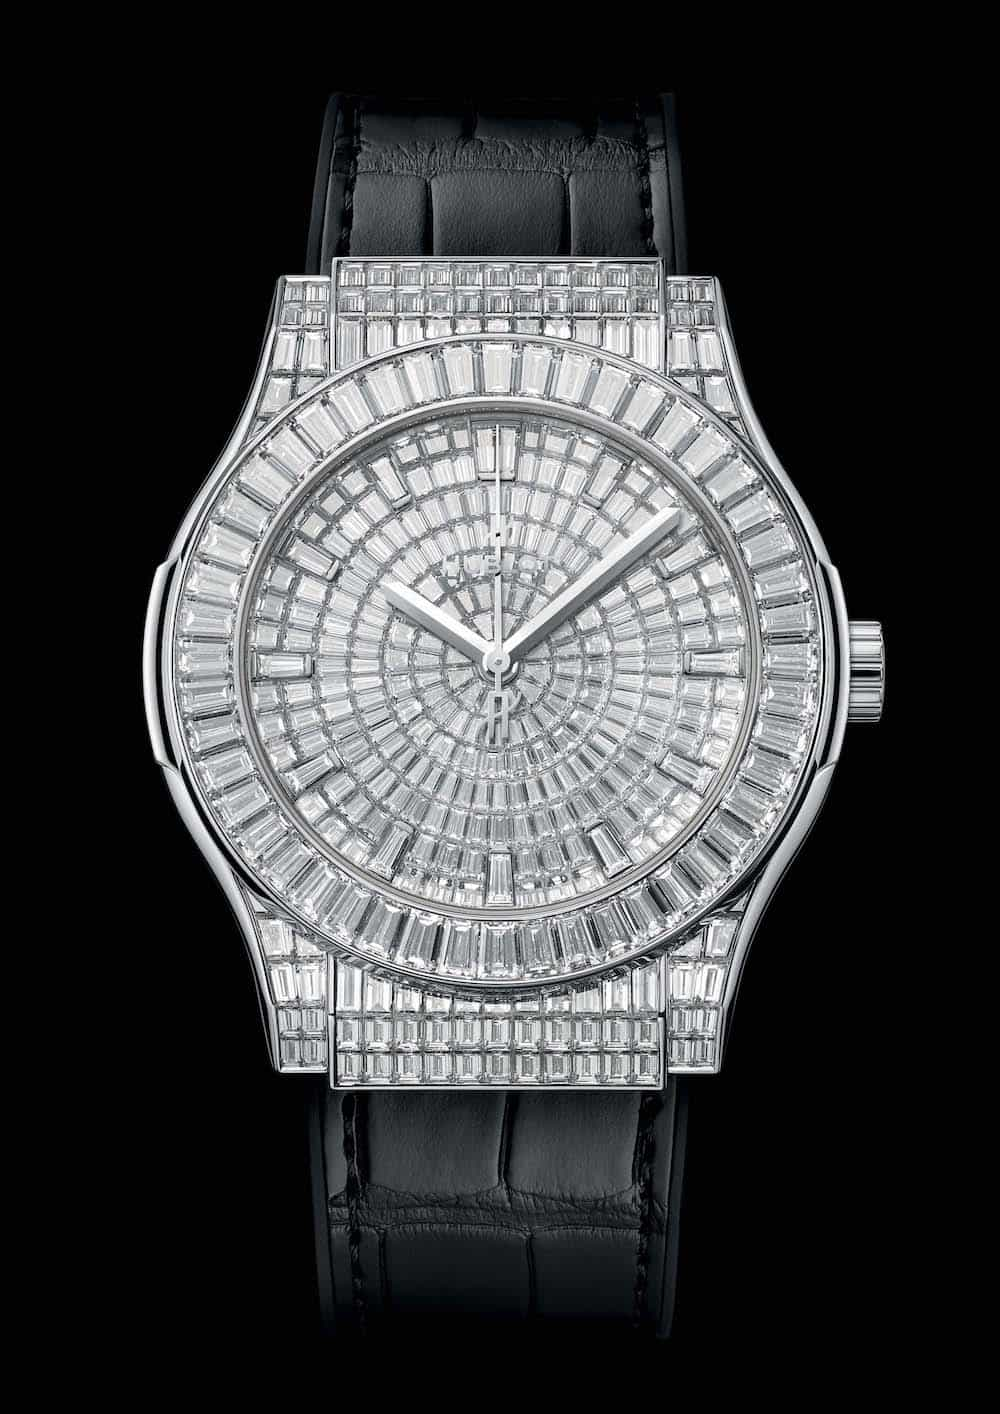 Hublot High Jewellery Collection 8